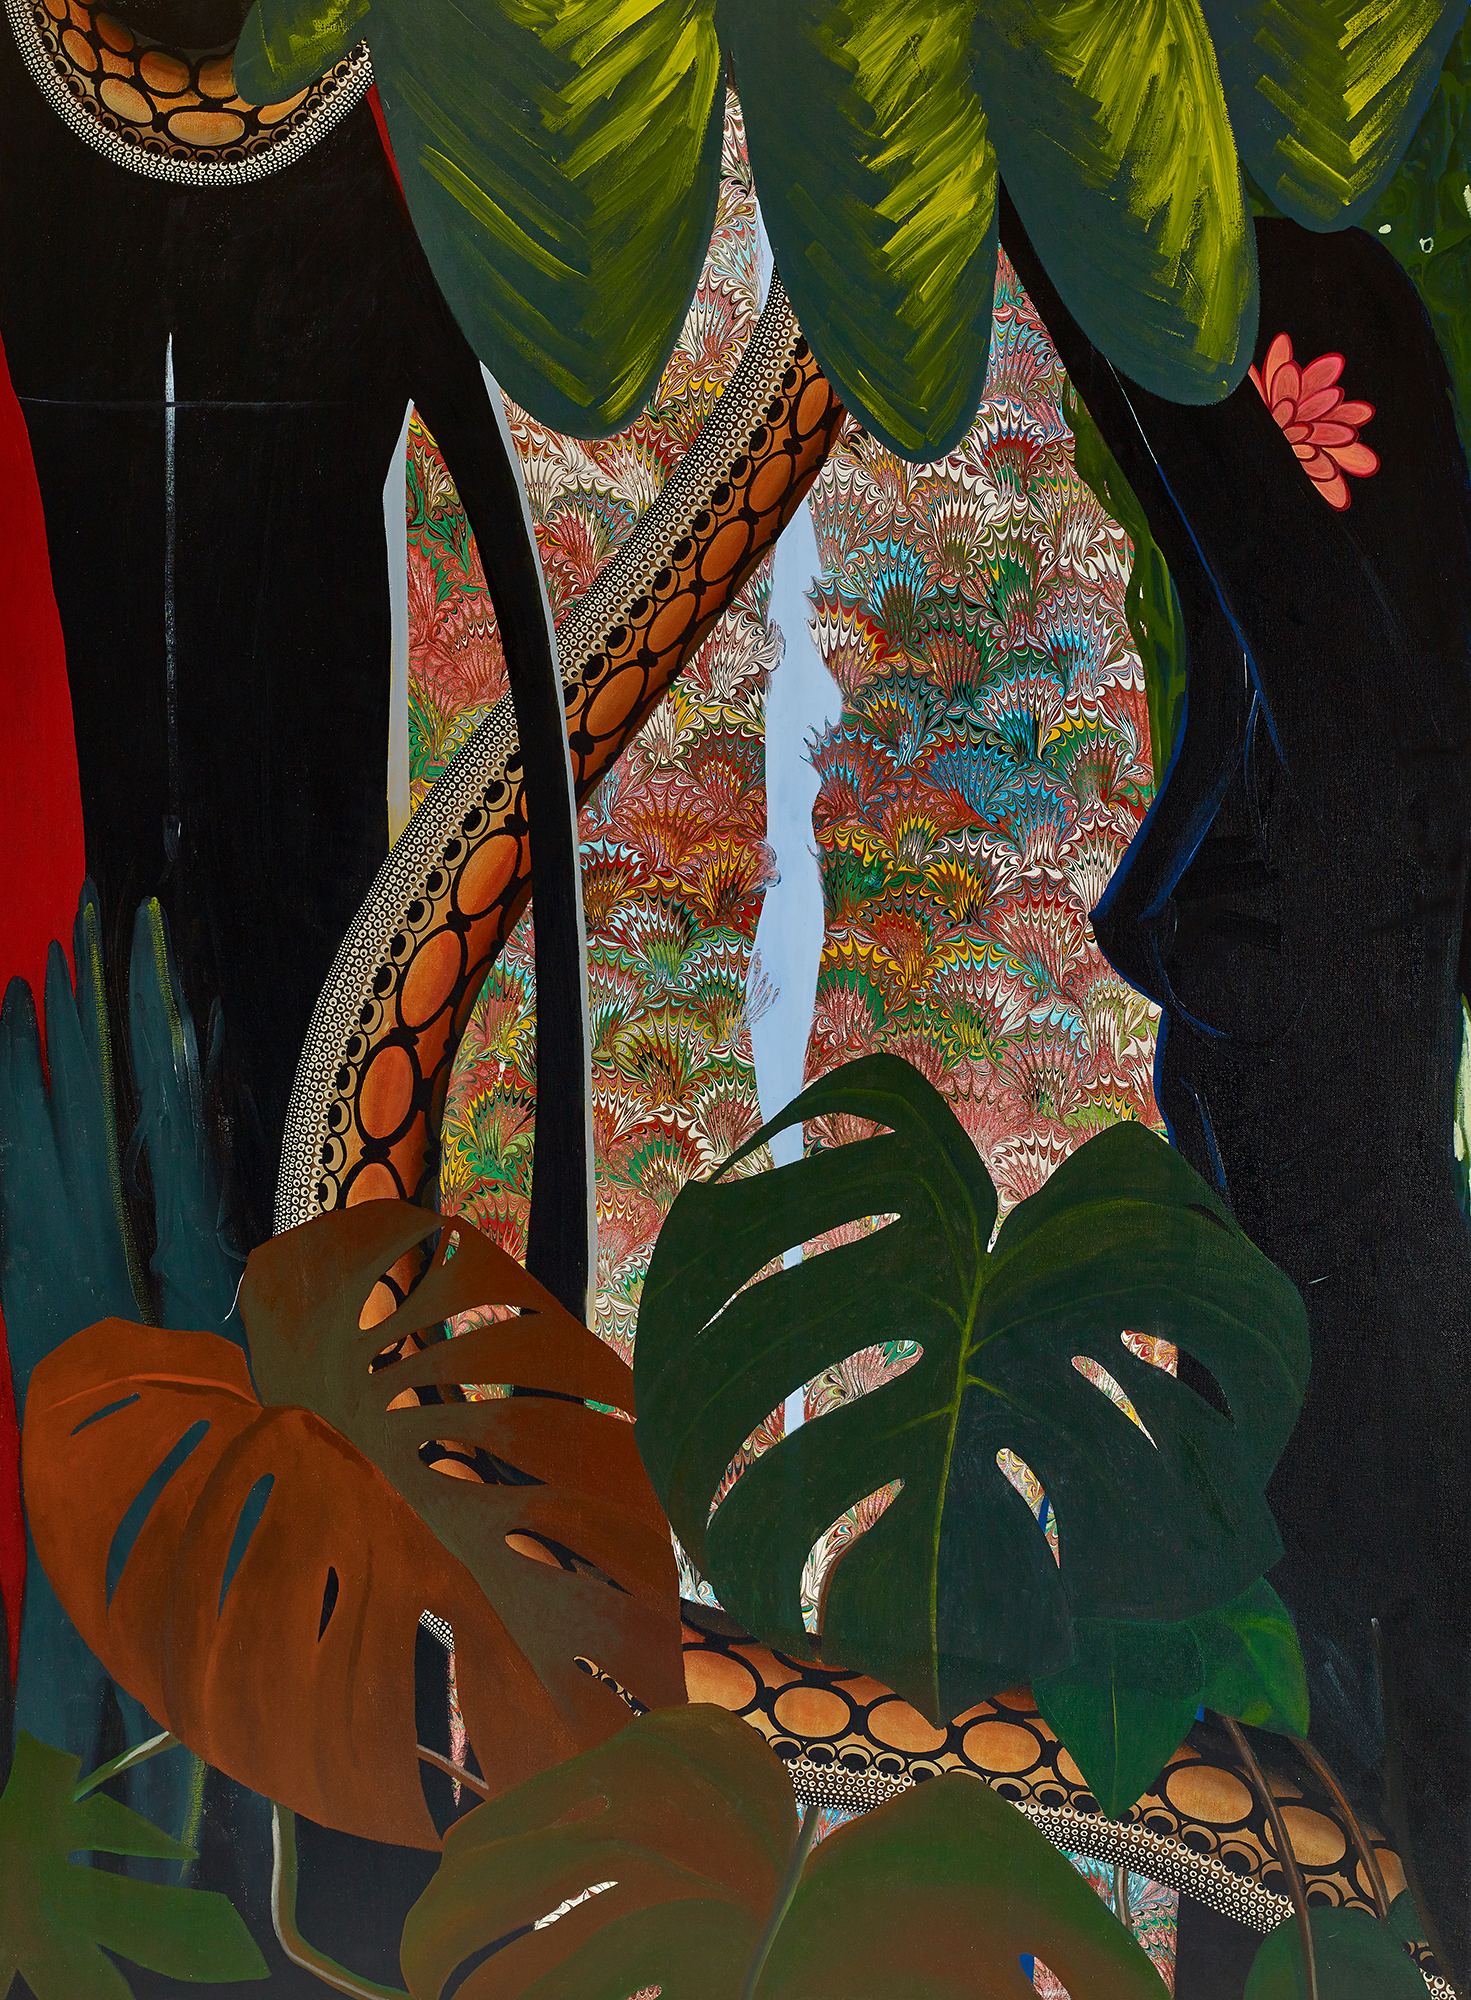 figures with snake and philodendron